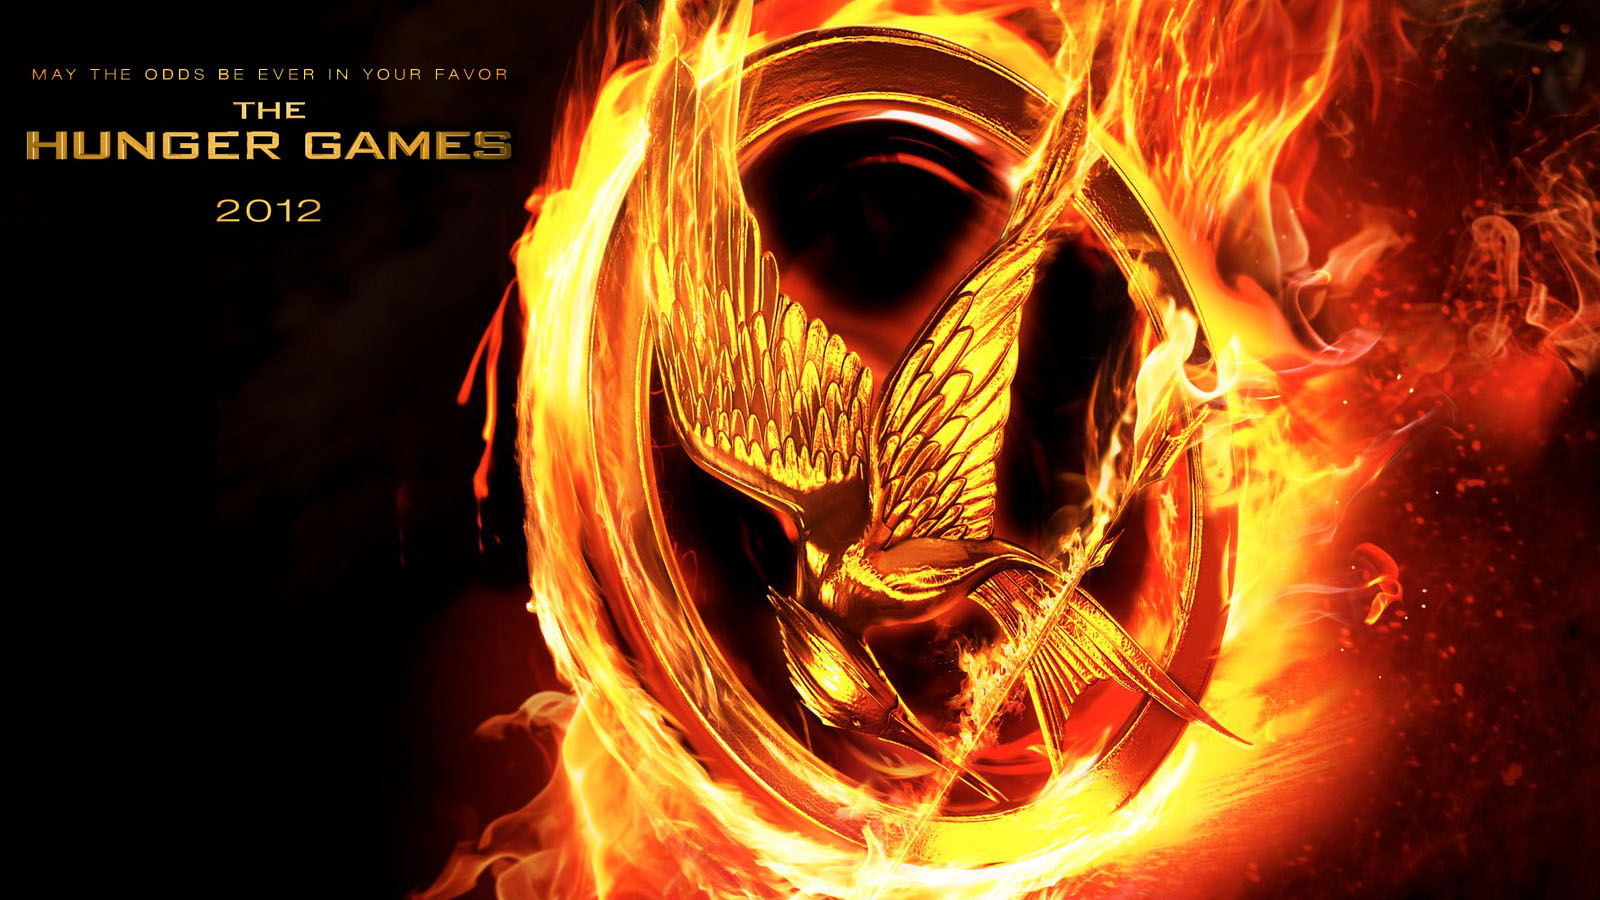 'The Hunger Games' Movie Poster Wallpapers - The Hunger ...